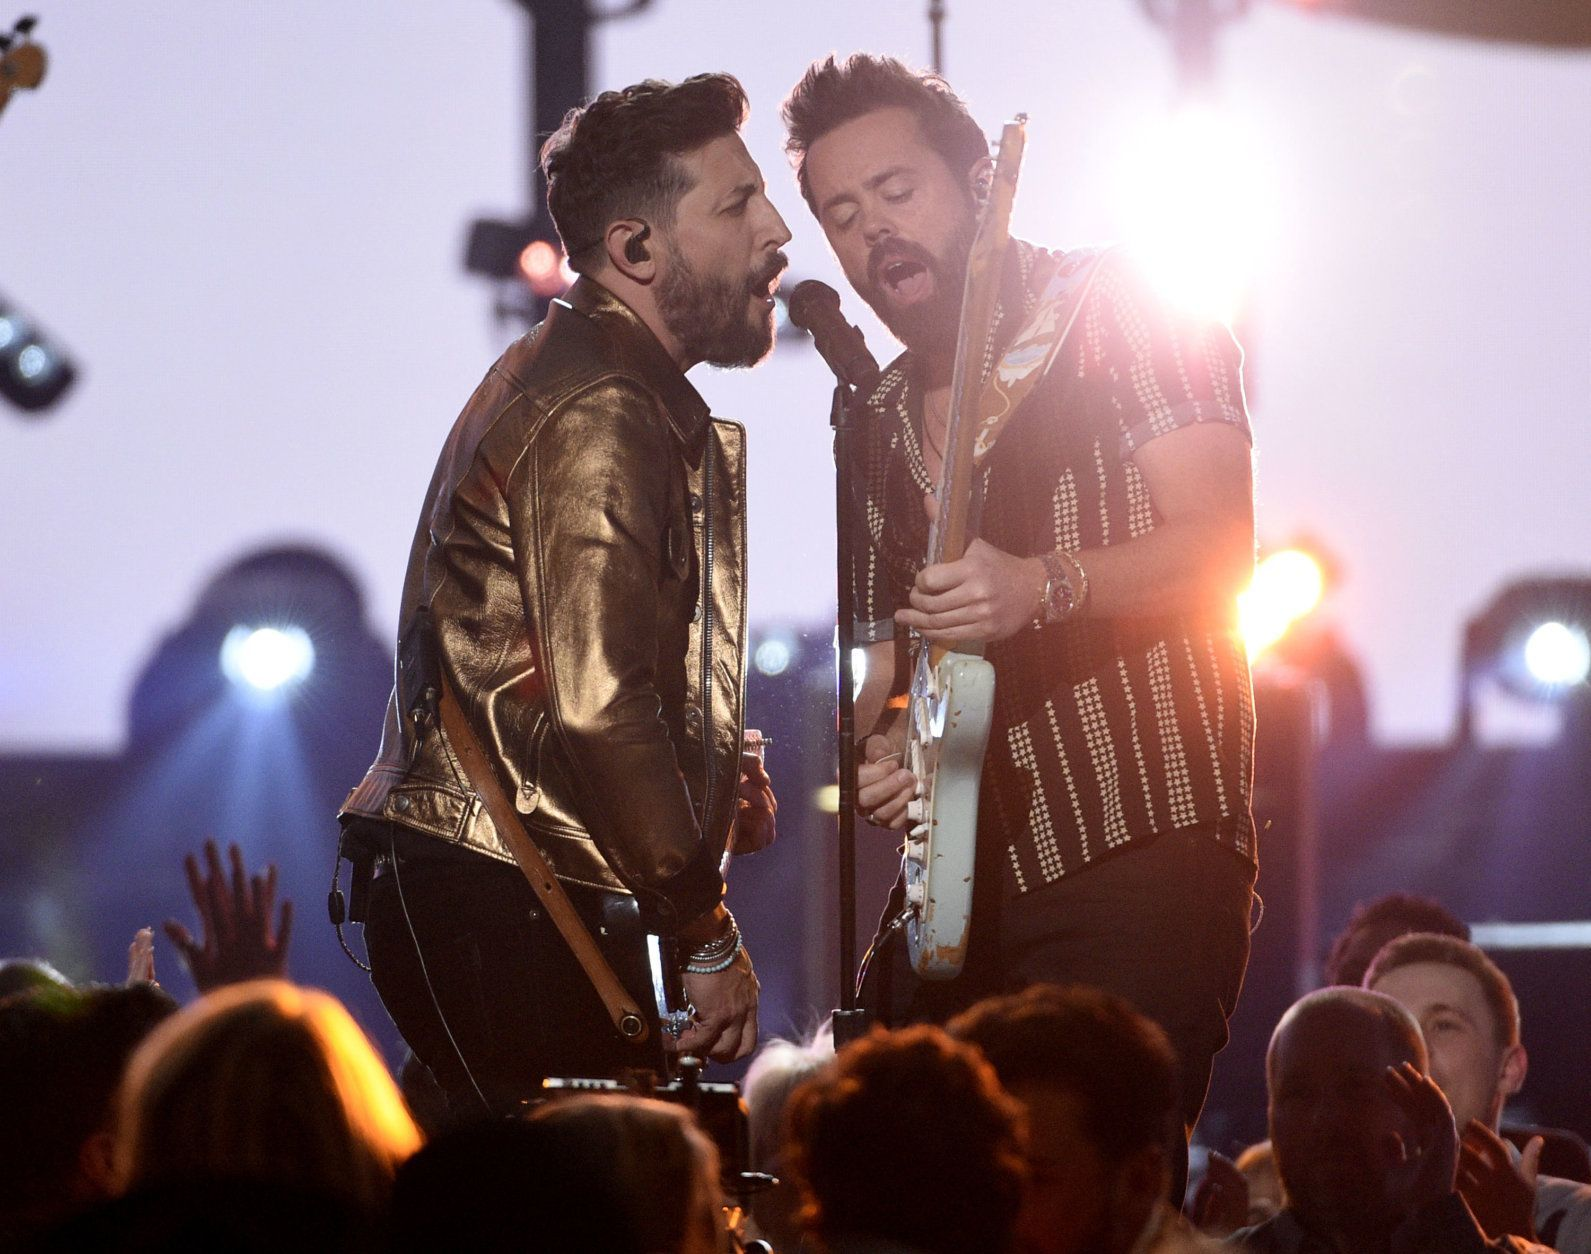 """Matthew Ramsey, left, and Brad Tursi, of Old Dominion, perform """"Make It Sweet"""" at the 54th annual Academy of Country Music Awards at the MGM Grand Garden Arena on Sunday, April 7, 2019, in Las Vegas. (Photo by Chris Pizzello/Invision/AP)"""